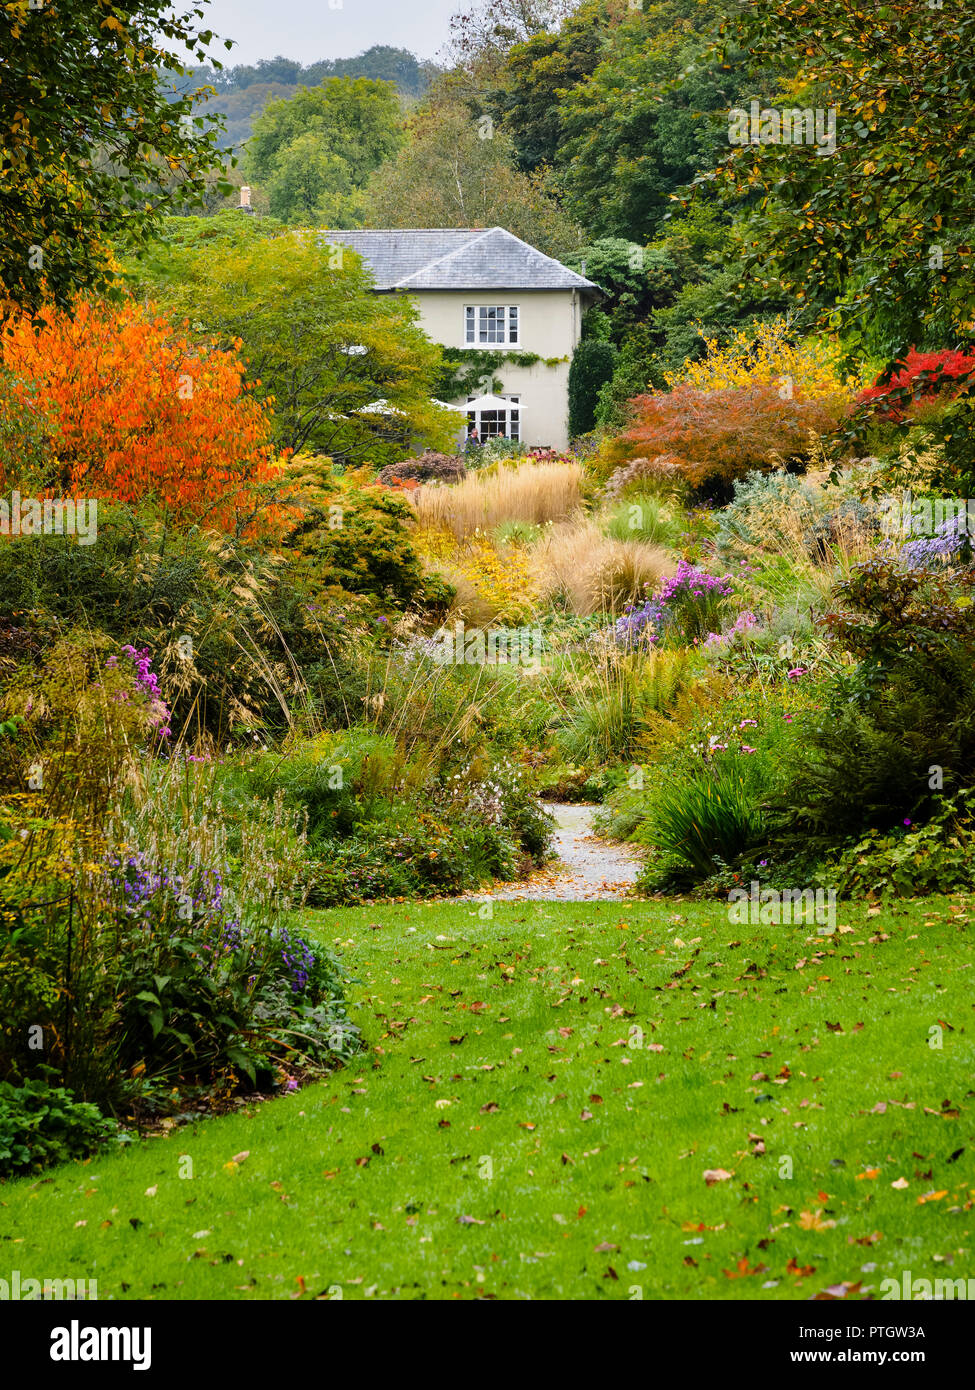 compressed-perspective-view-over-the-autumn-hues-of-the-long-walk-at-the-garden-house-buckland-monachorum-devon-uk-PTGW3A.jpg